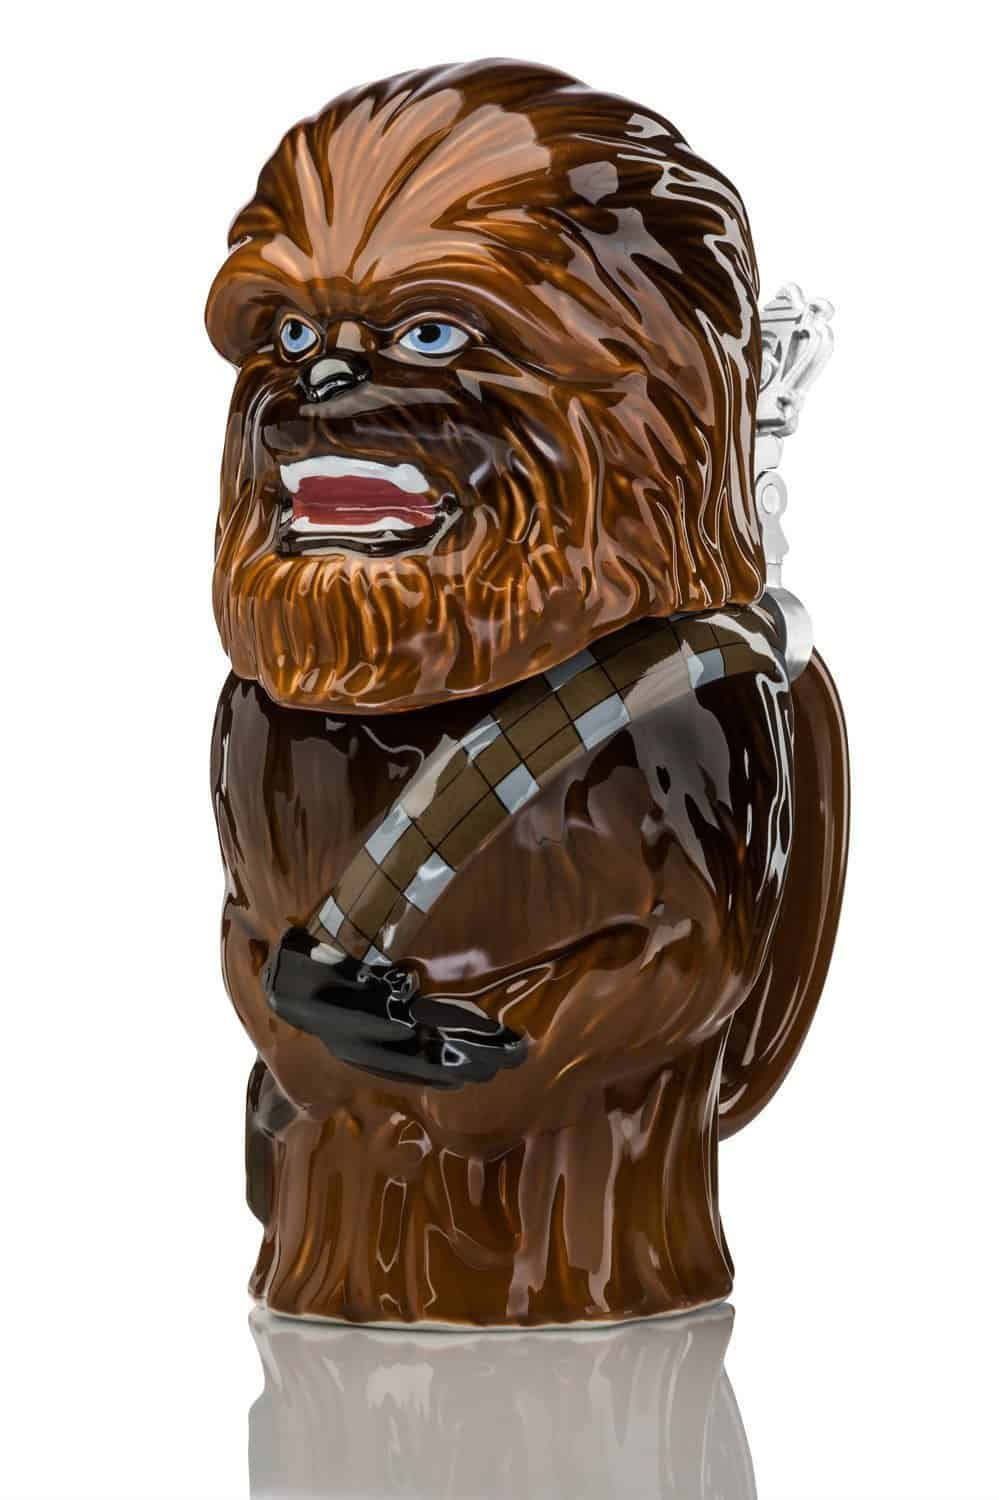 Star Wars Chewbacca Stein Cool Fan Gift